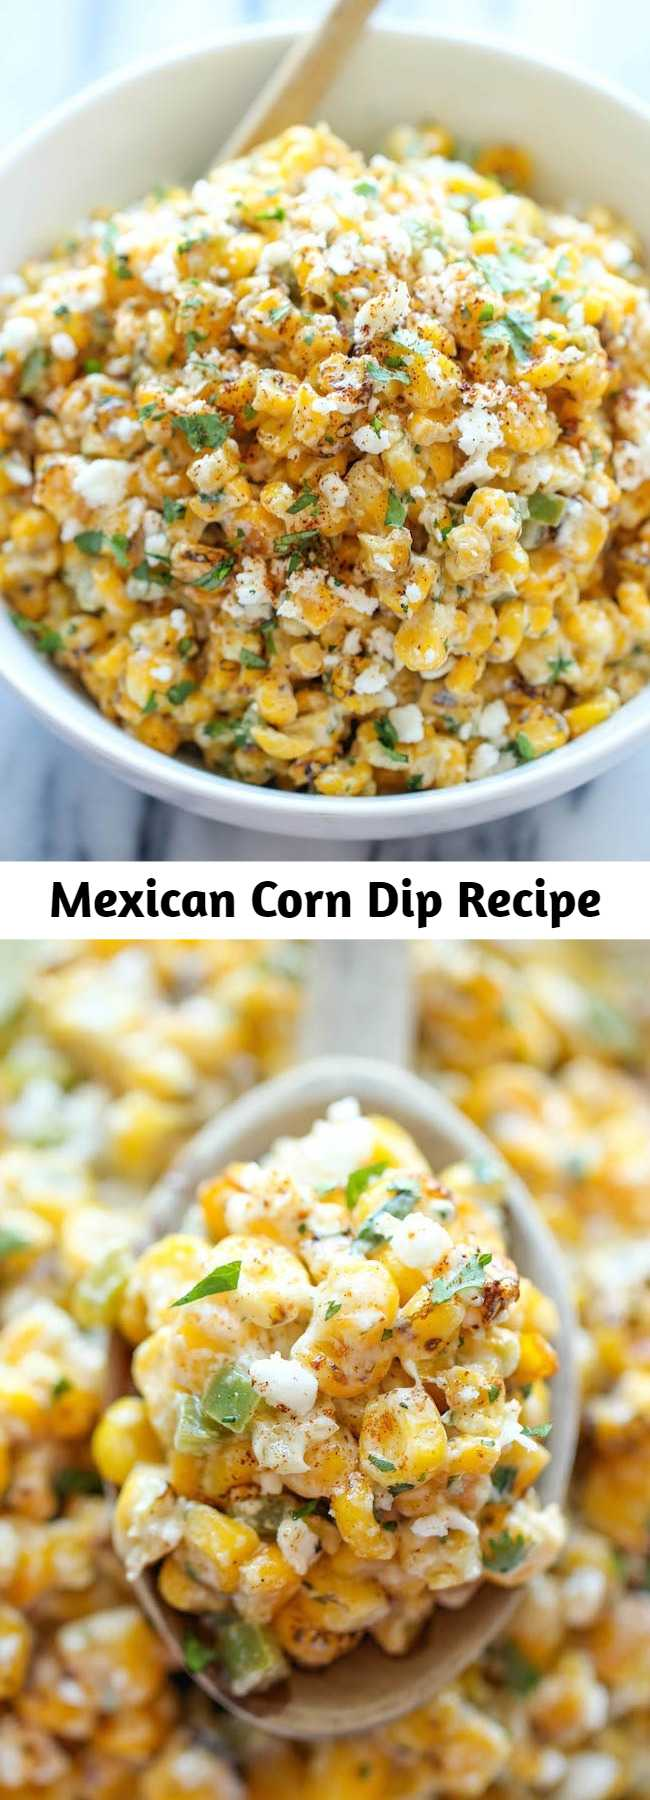 Mexican Corn Dip Recipe - The traditional Mexican street corn is turned into the best dip ever. It's so good, you won't even need the chips. Just grab a spoon and eat!